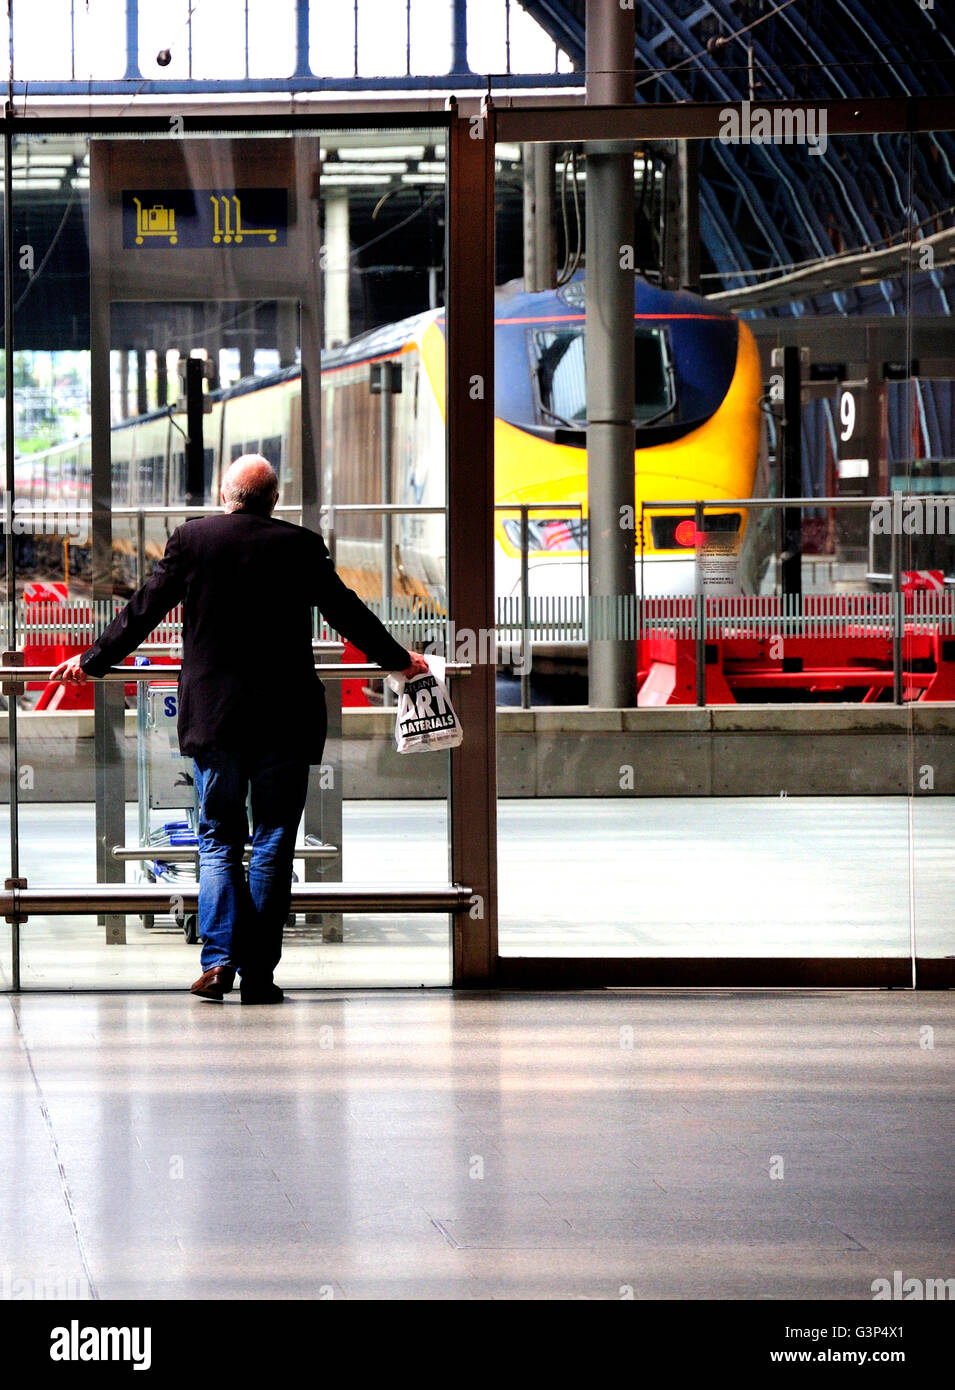 London, England, UK. St Pancras International Railway Station. Man waiting by Eurostar terminal Stock Photo